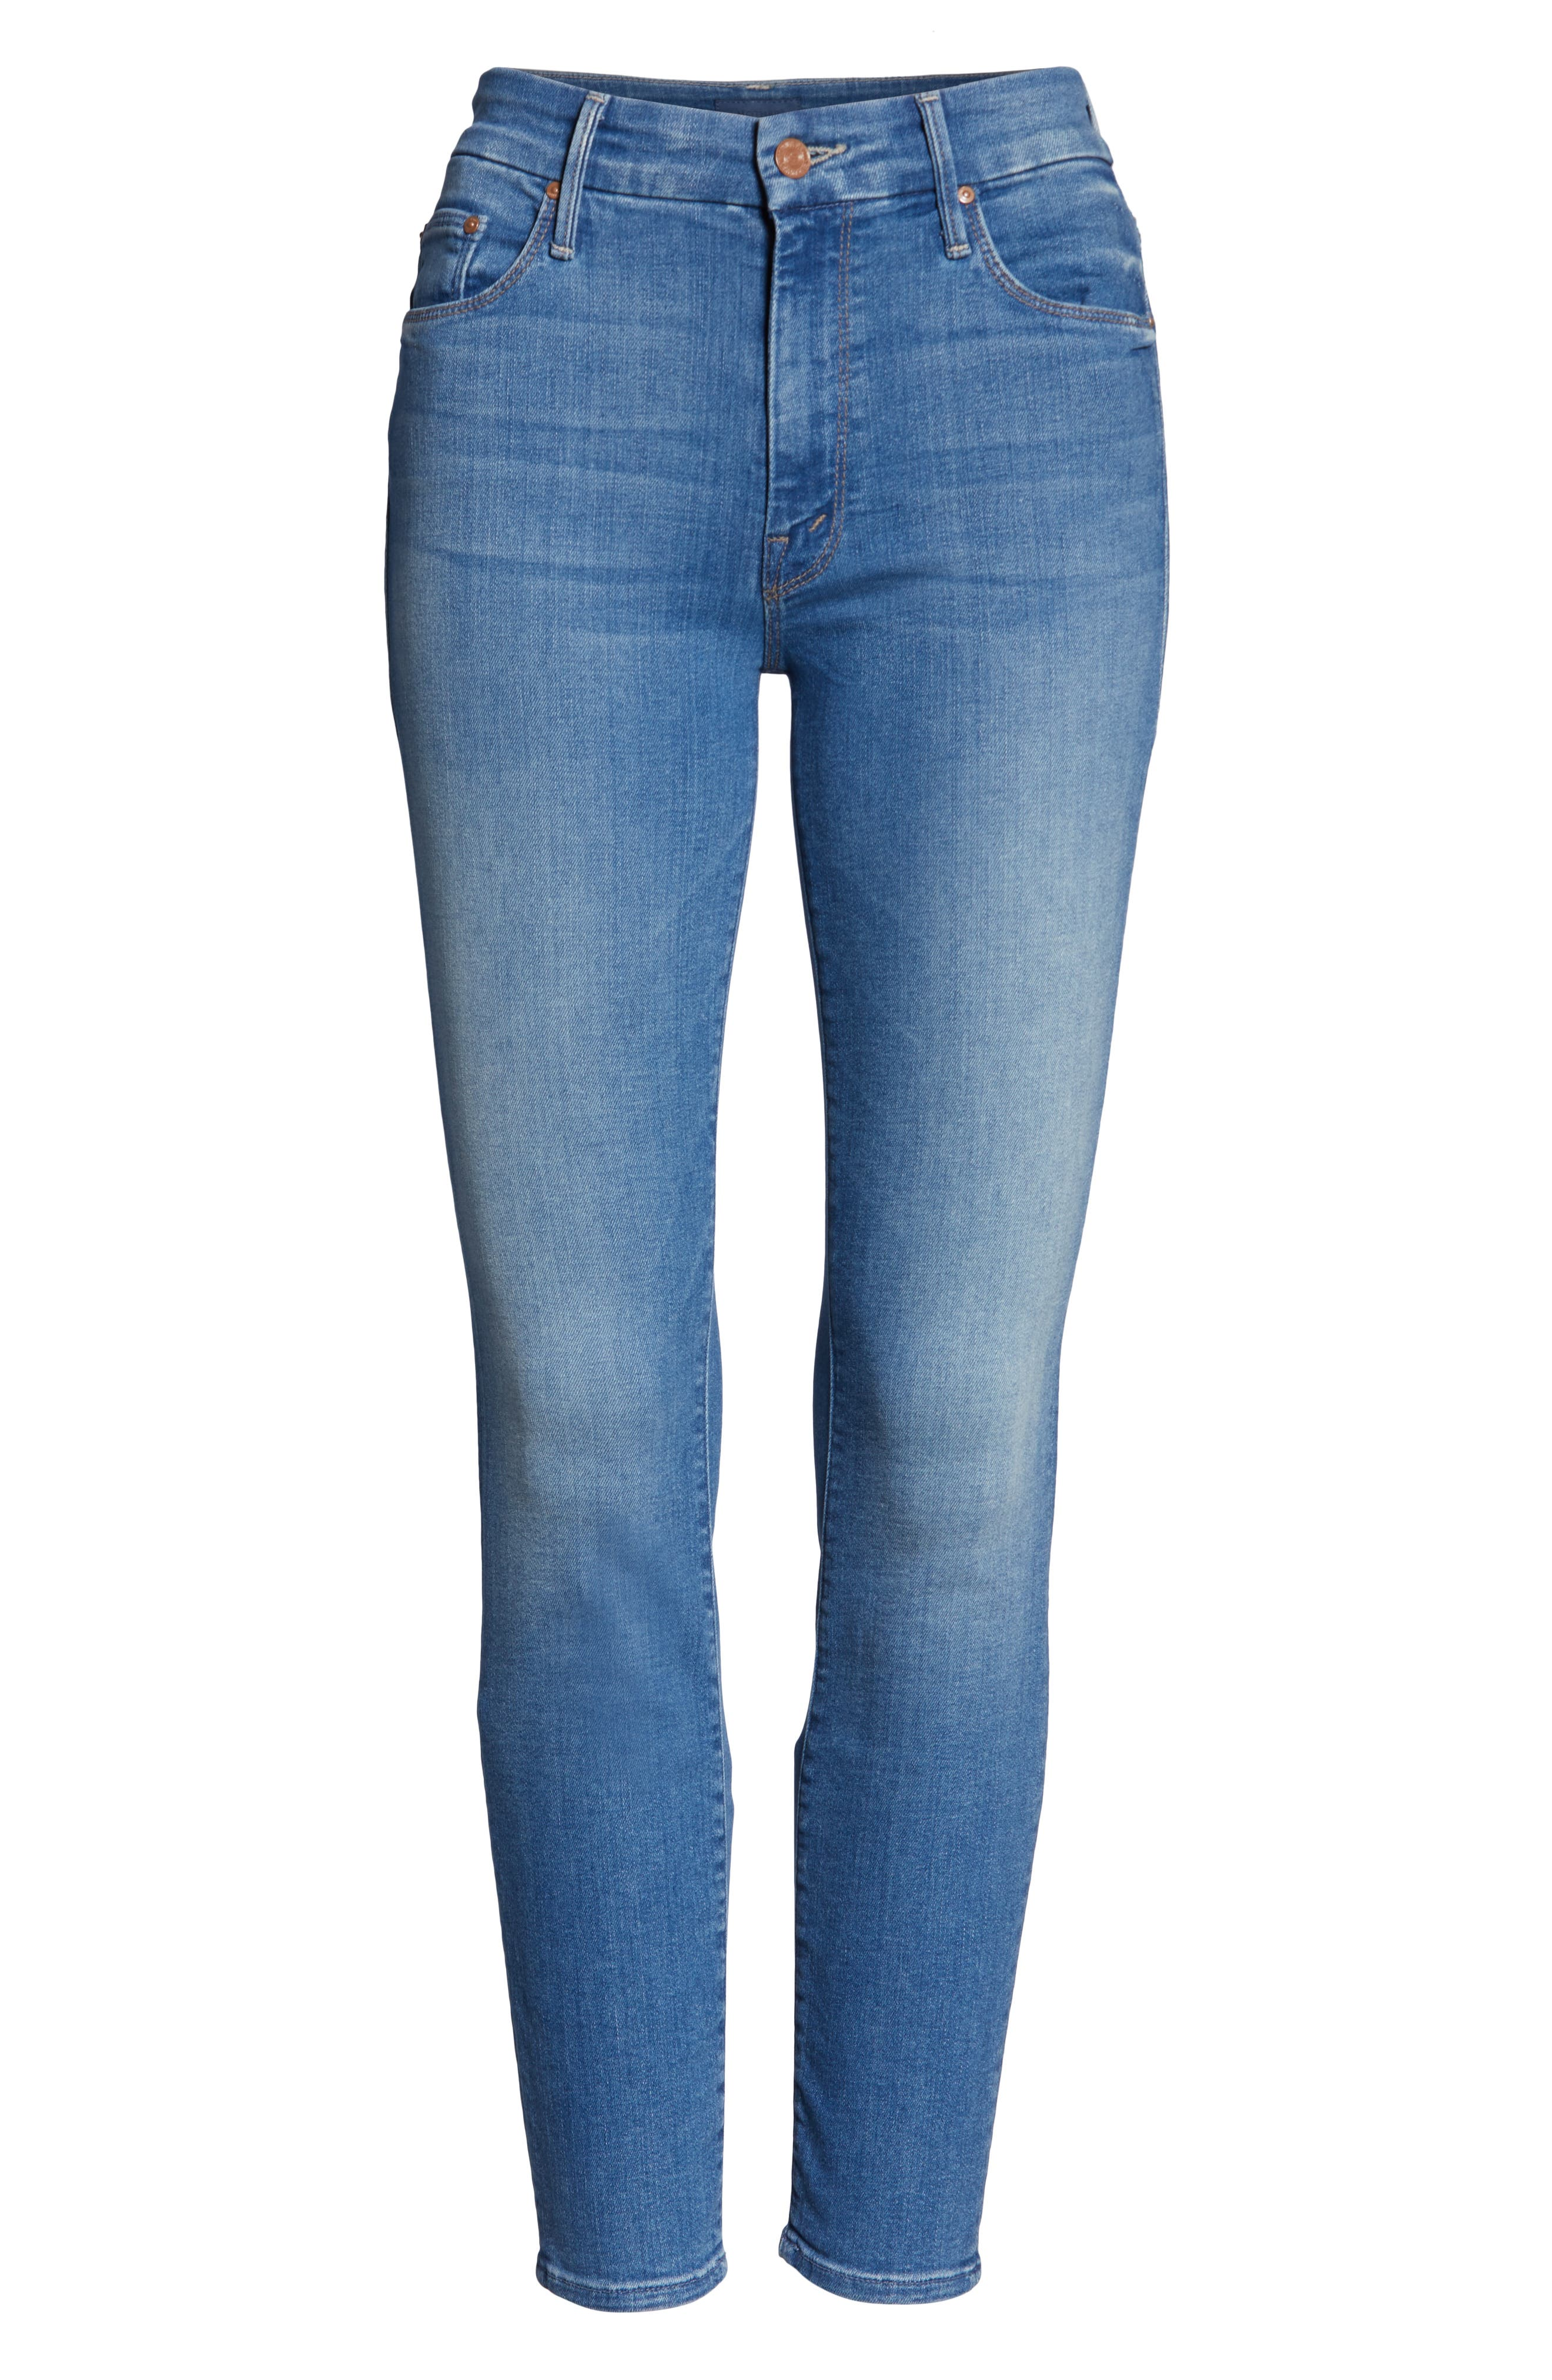 MOTHER, The Looker Crop Skinny Jeans, Alternate thumbnail 6, color, WISHFUL DRINKING